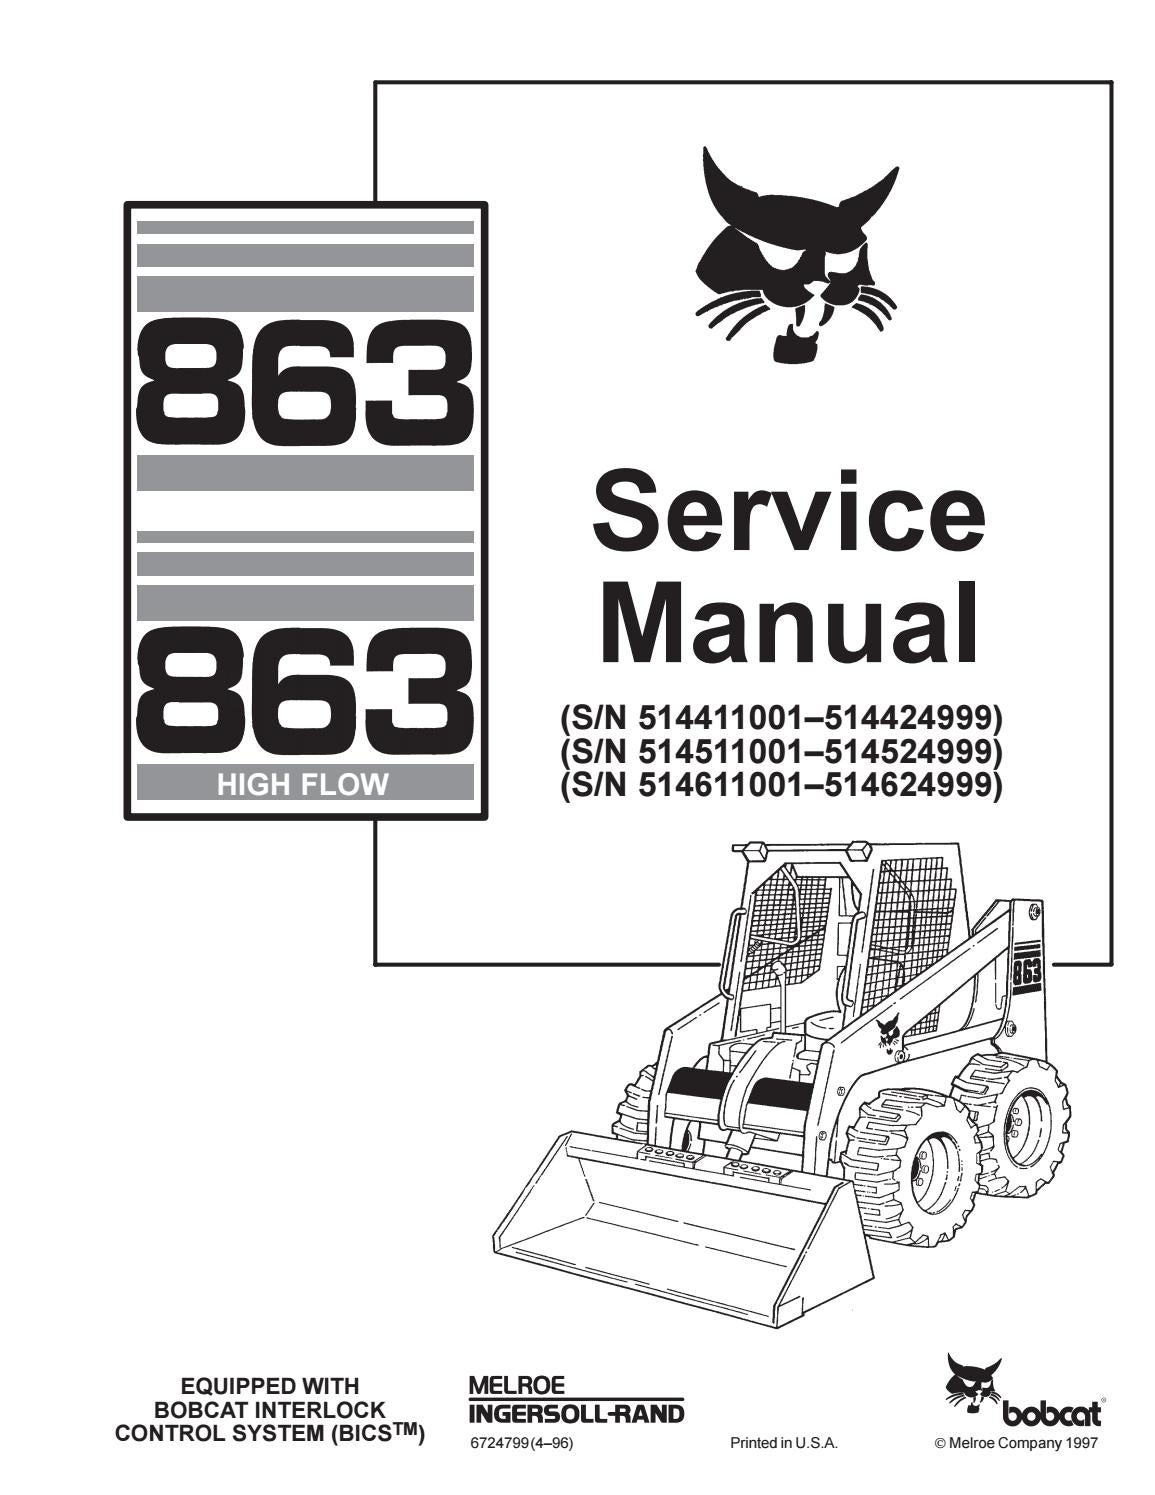 Bobcat 863 skid steer loader service repair manual sn